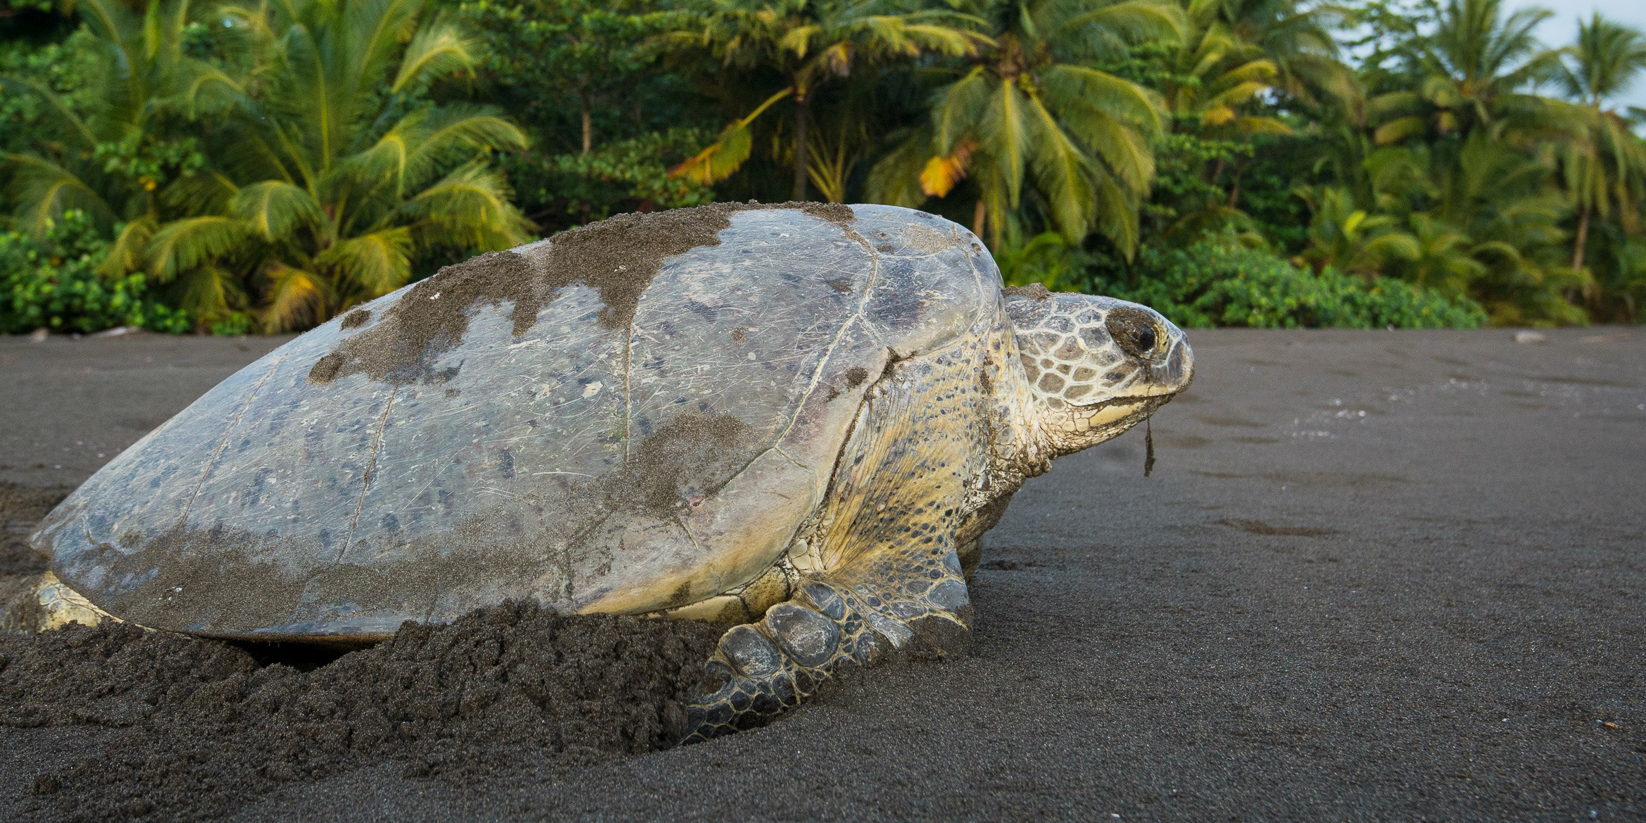 A green turtle crawls along a beach. This is one of the types of sea turtles in Costa Rica.